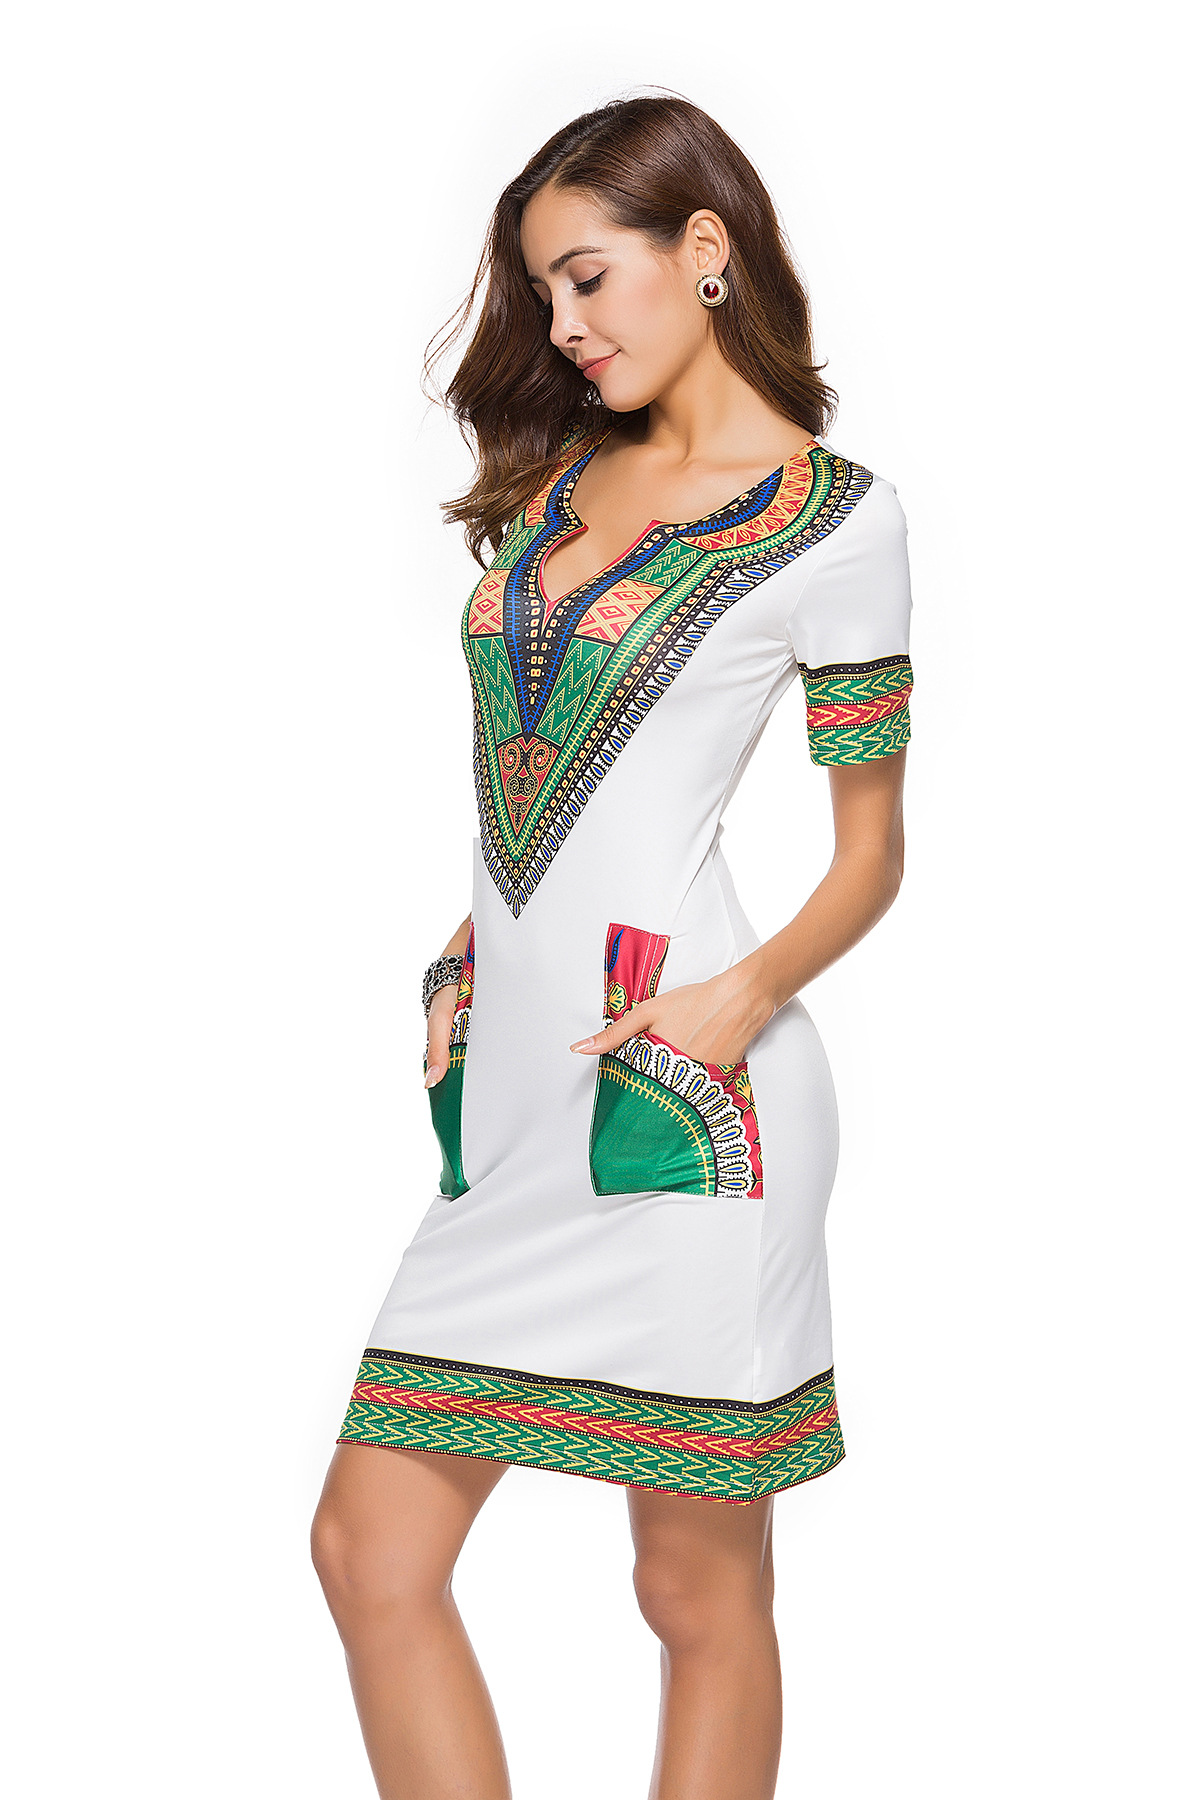 Bohemian Dress Girl V Neck Short Sleeve Pocket Mini Dresses Plus Size  Casual Beach Women Special Smooth Summer Fashion White Dresses For Party  Long ...